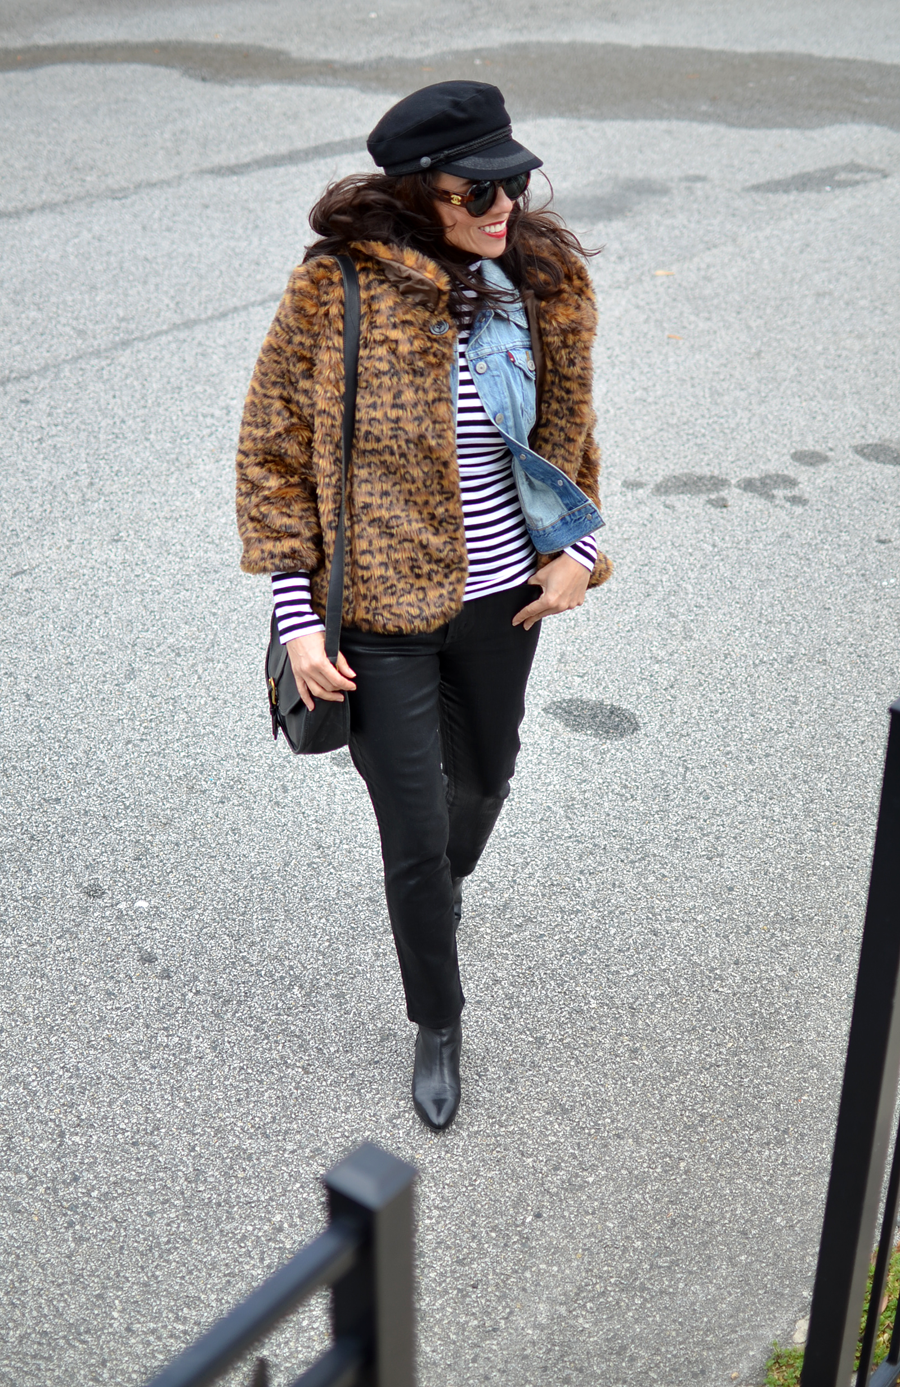 Chic layered outfit